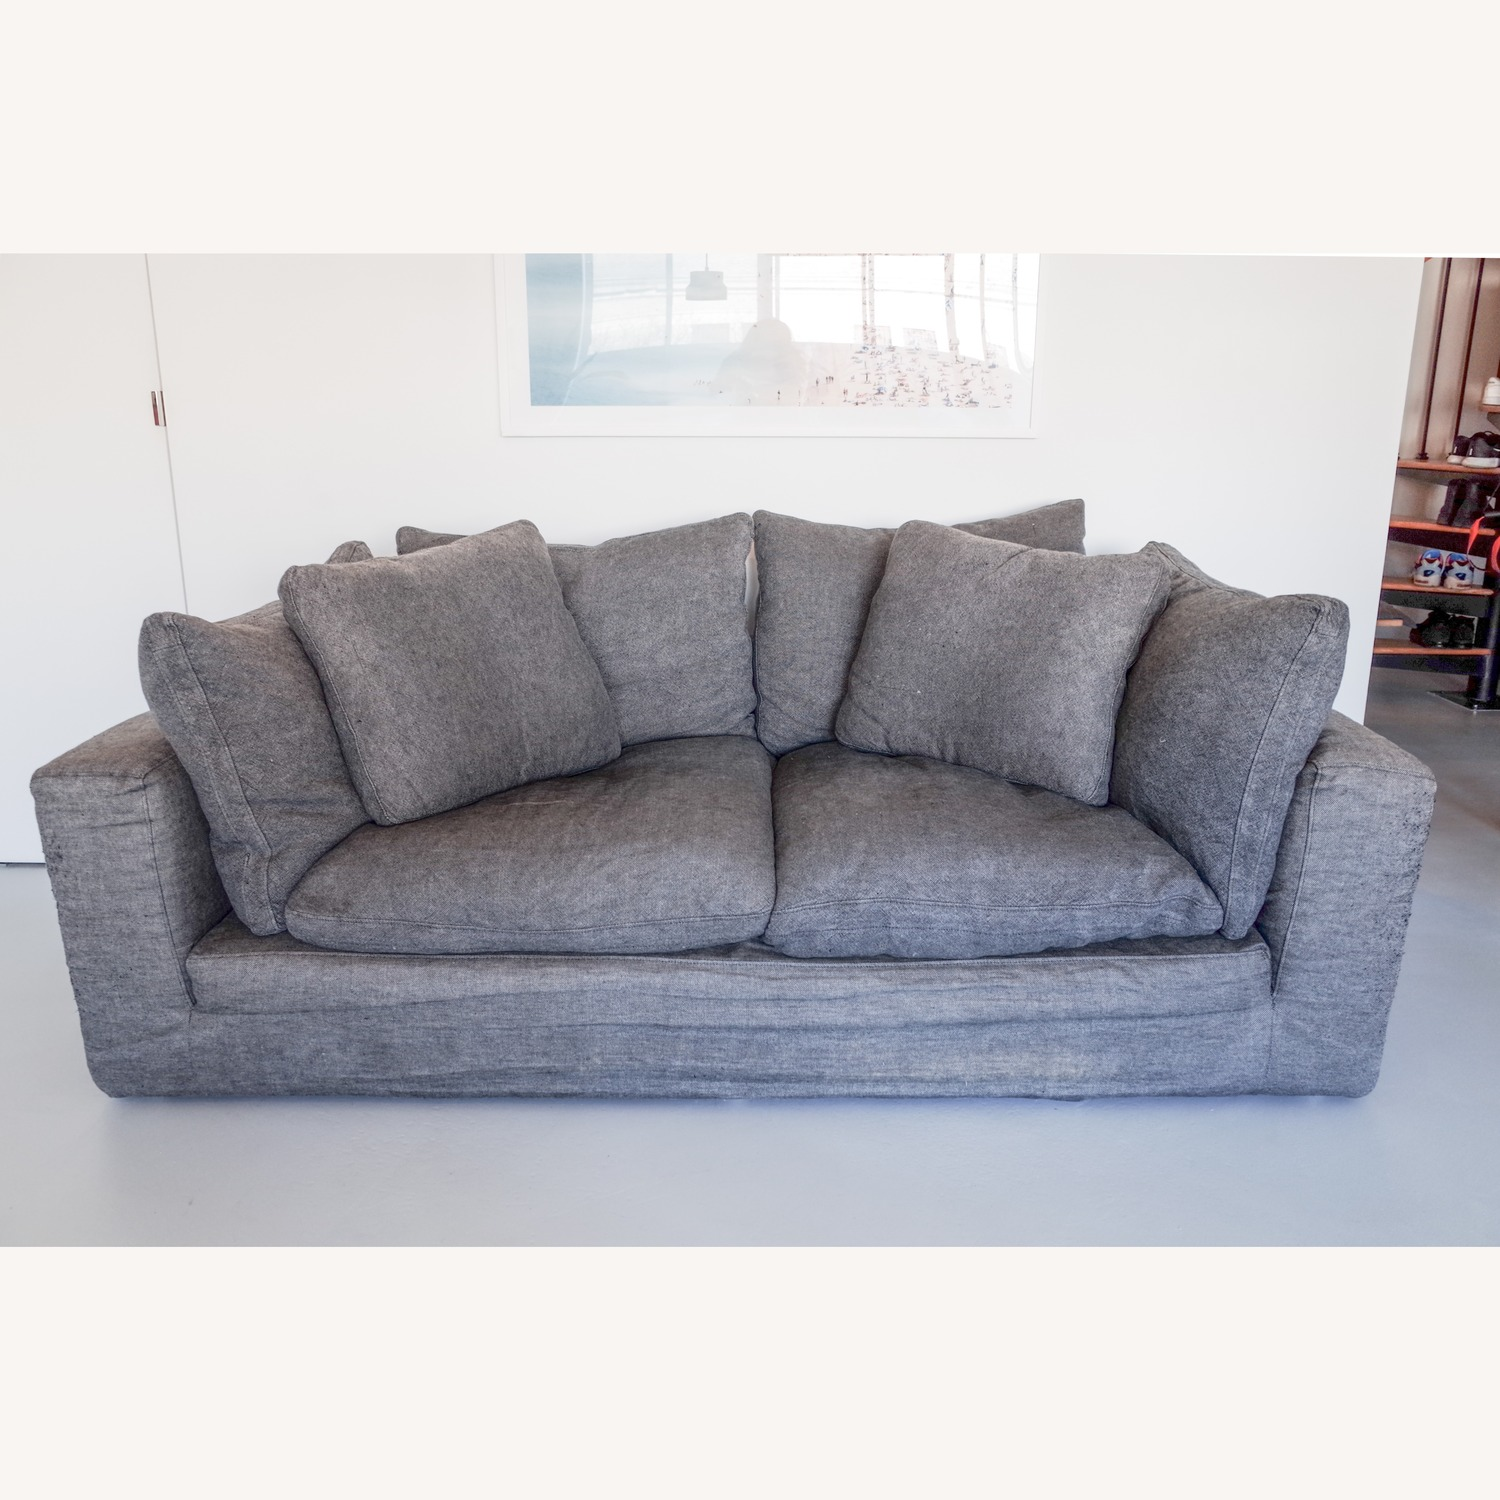 Restoration Hardware Cloud 2 Seat Cushion Sofa - image-1